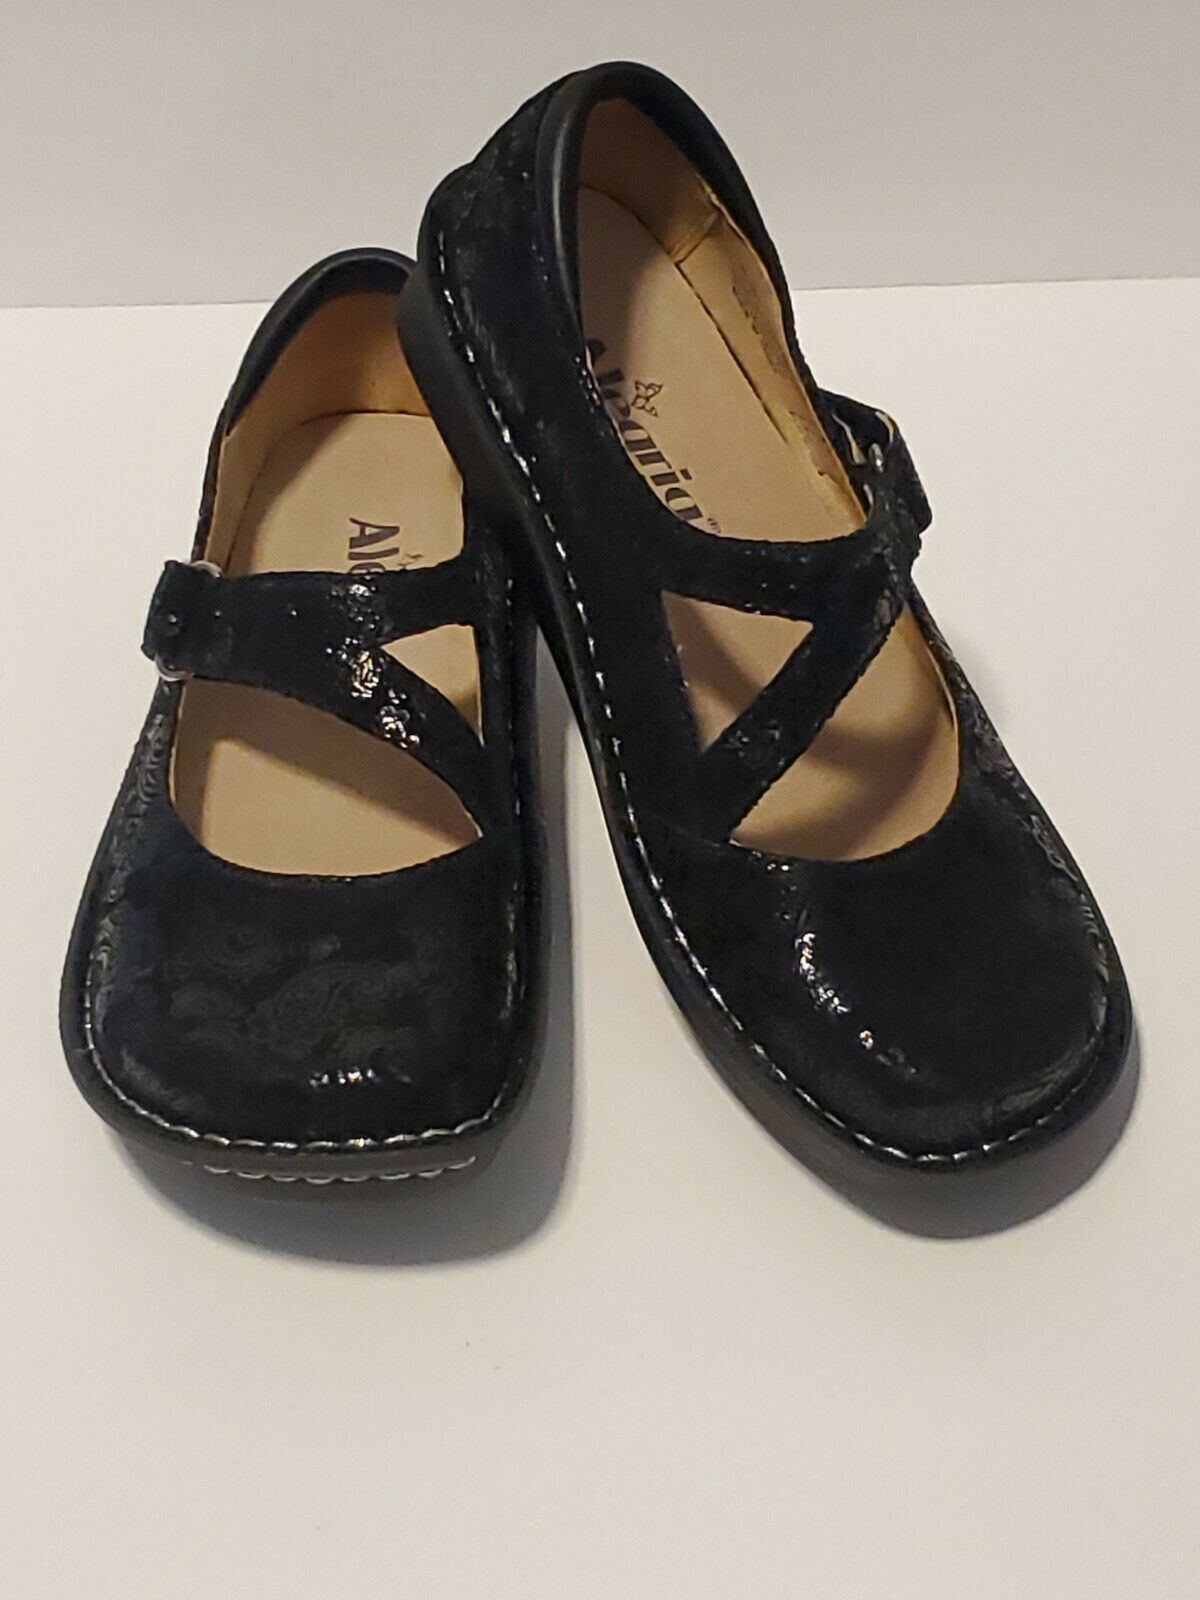 Alegria by PG Lite Leather Mary Jane Comfort Shoes- Size 36 EU, 6-6.5 US